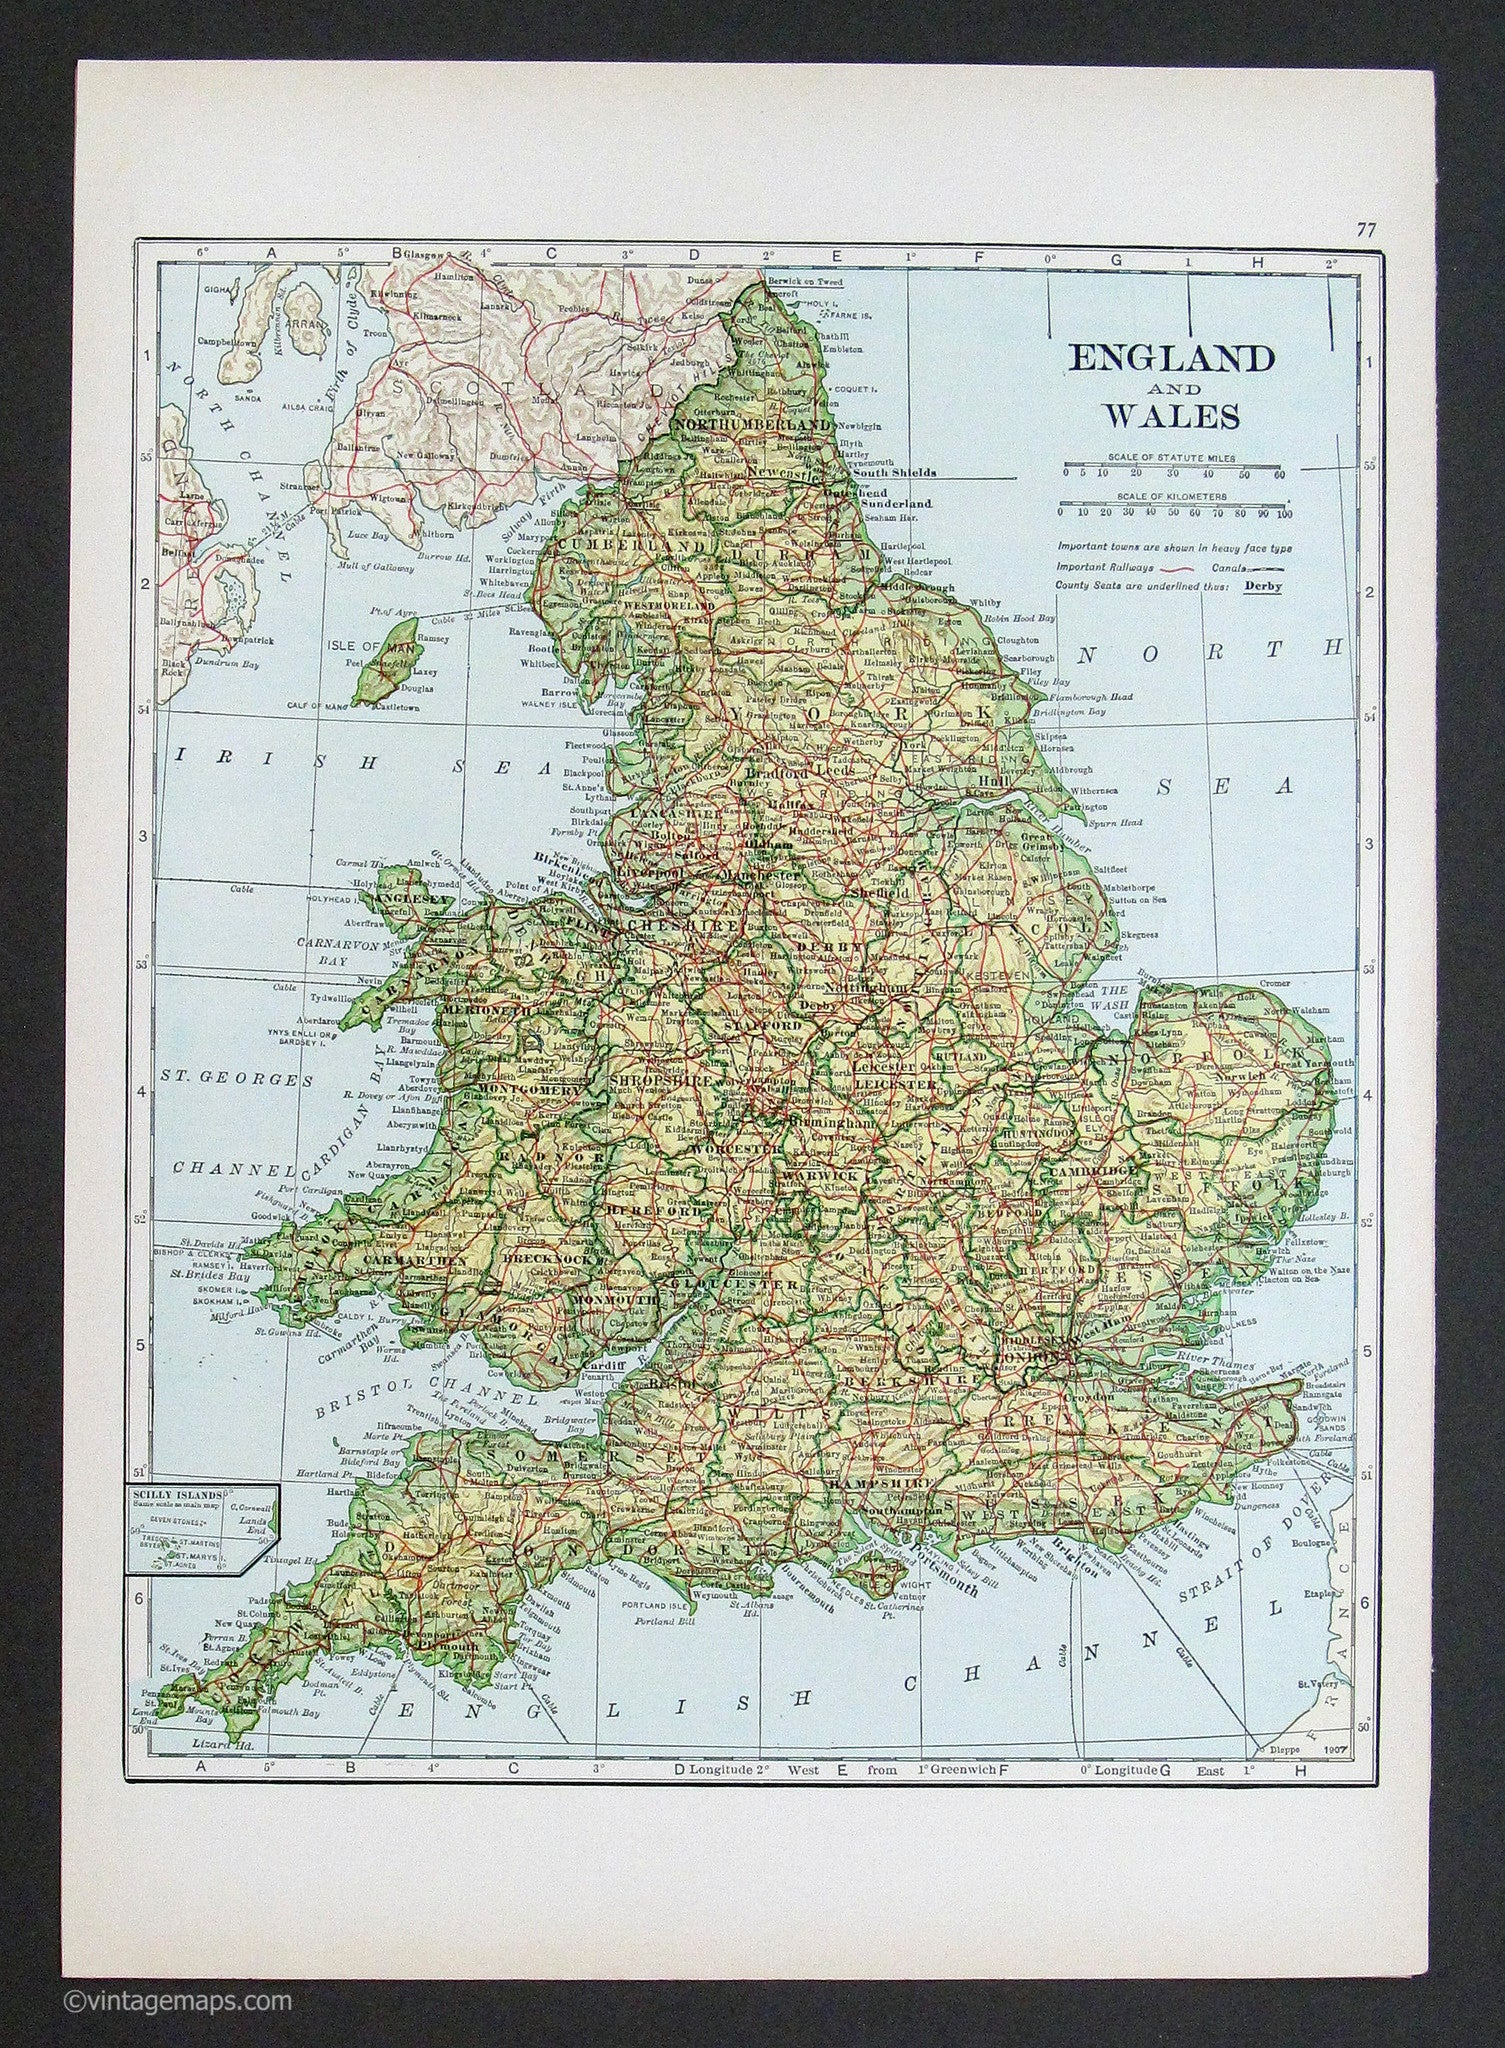 Map Of England And Wales With Cities.England And Wales 1933